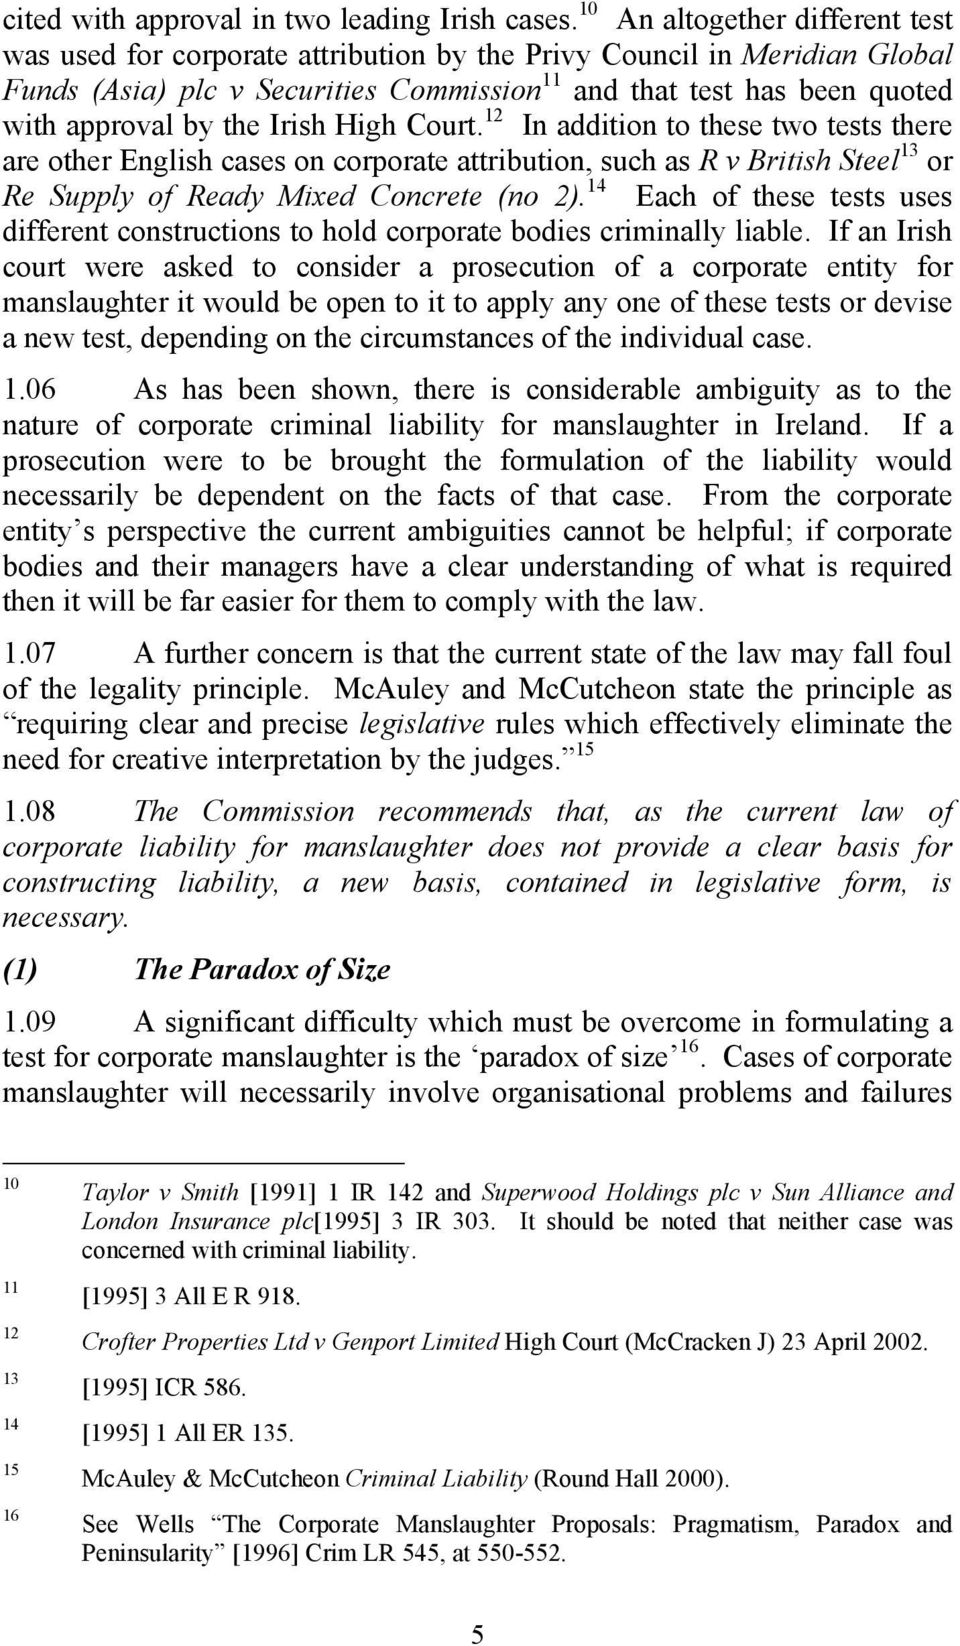 the Irish High Court. 12 In addition to these two tests there are other English cases on corporate attribution, such as R v British Steel 13 or Re Supply of Ready Mixed Concrete (no 2).